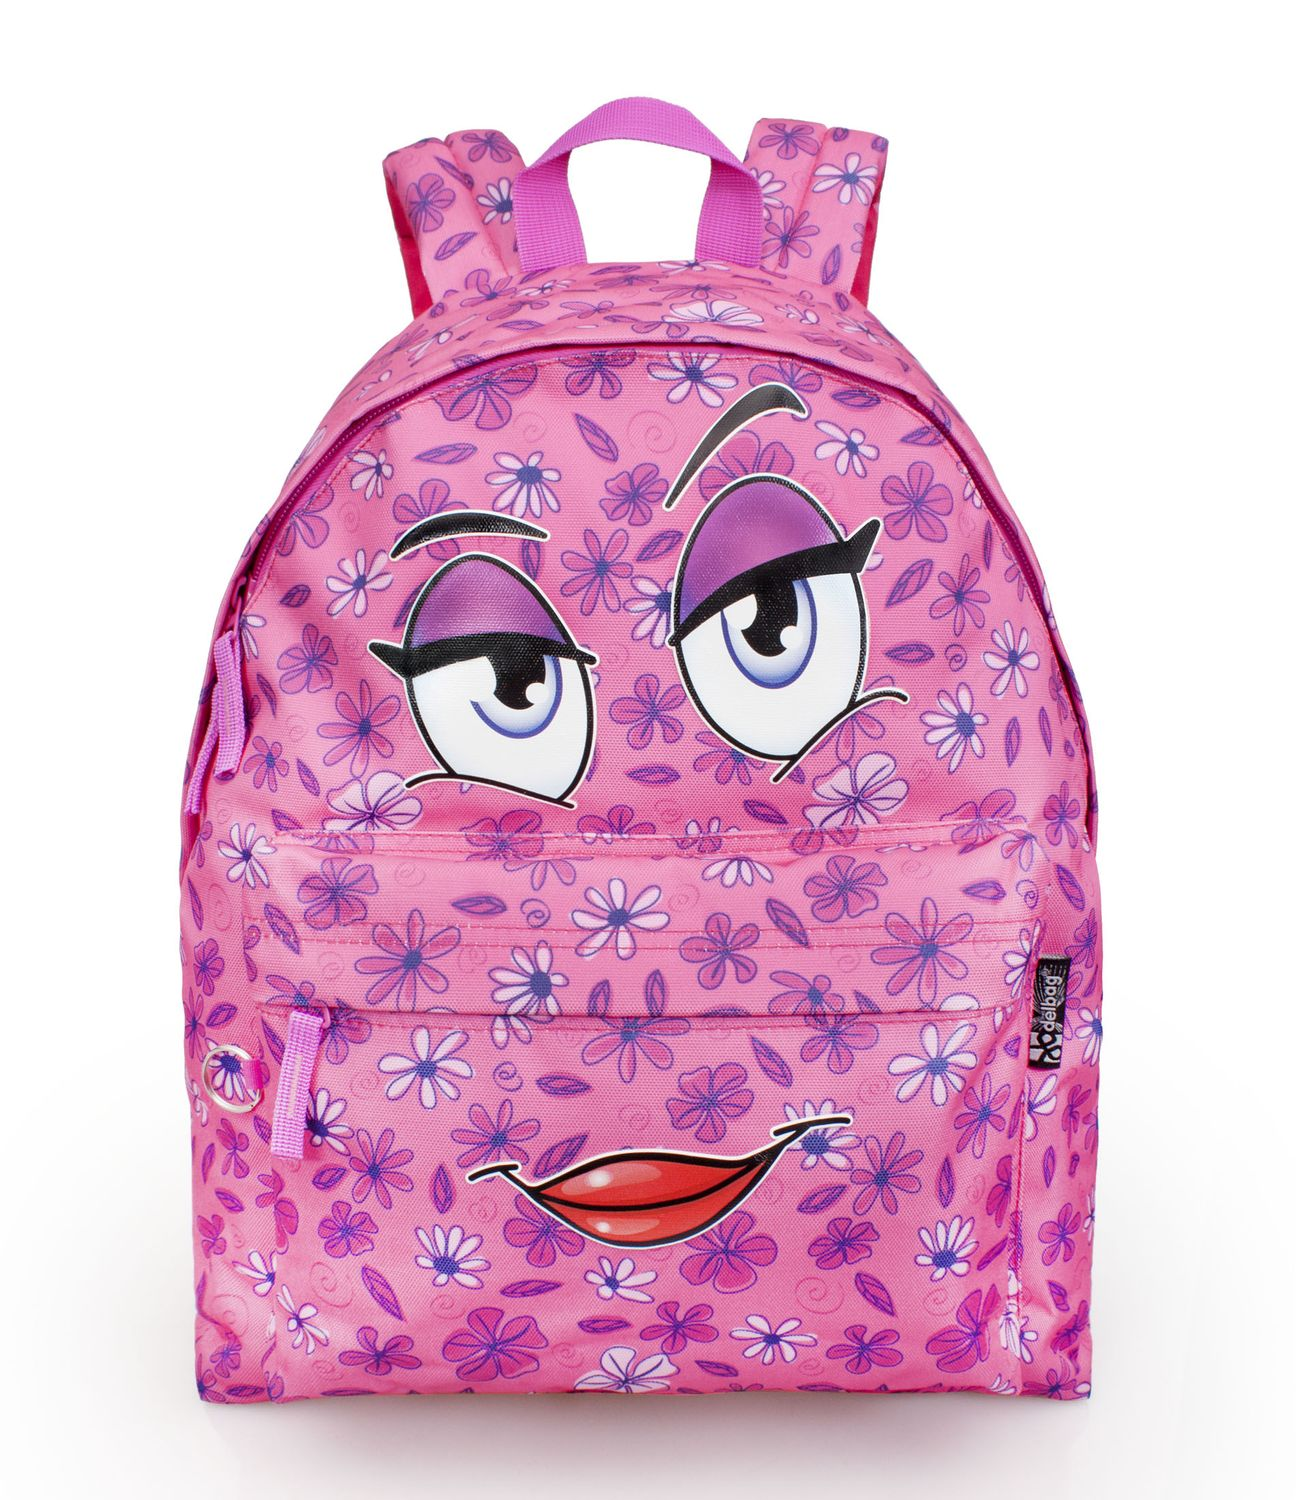 Delbag COME HERE Pink Backpack